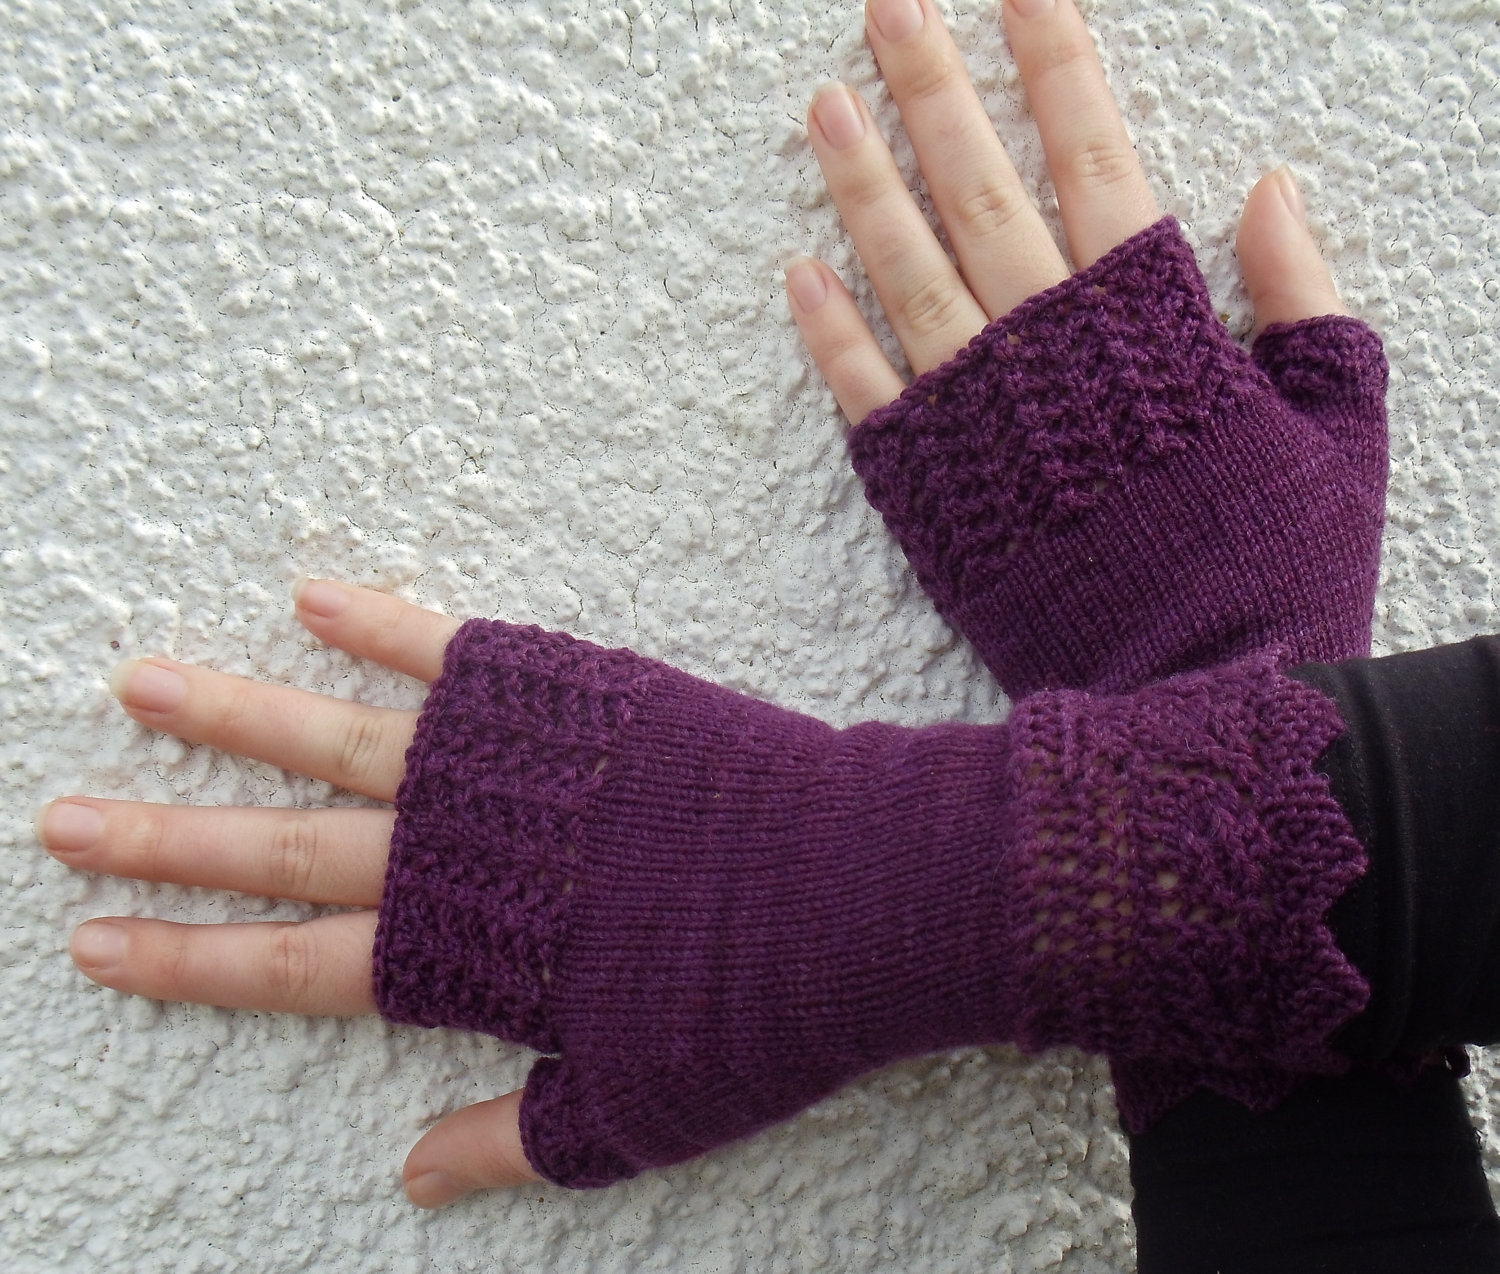 Knitted Shamrock Pattern : Fingerless Gloves Knitting Pattern A Knitting Blog